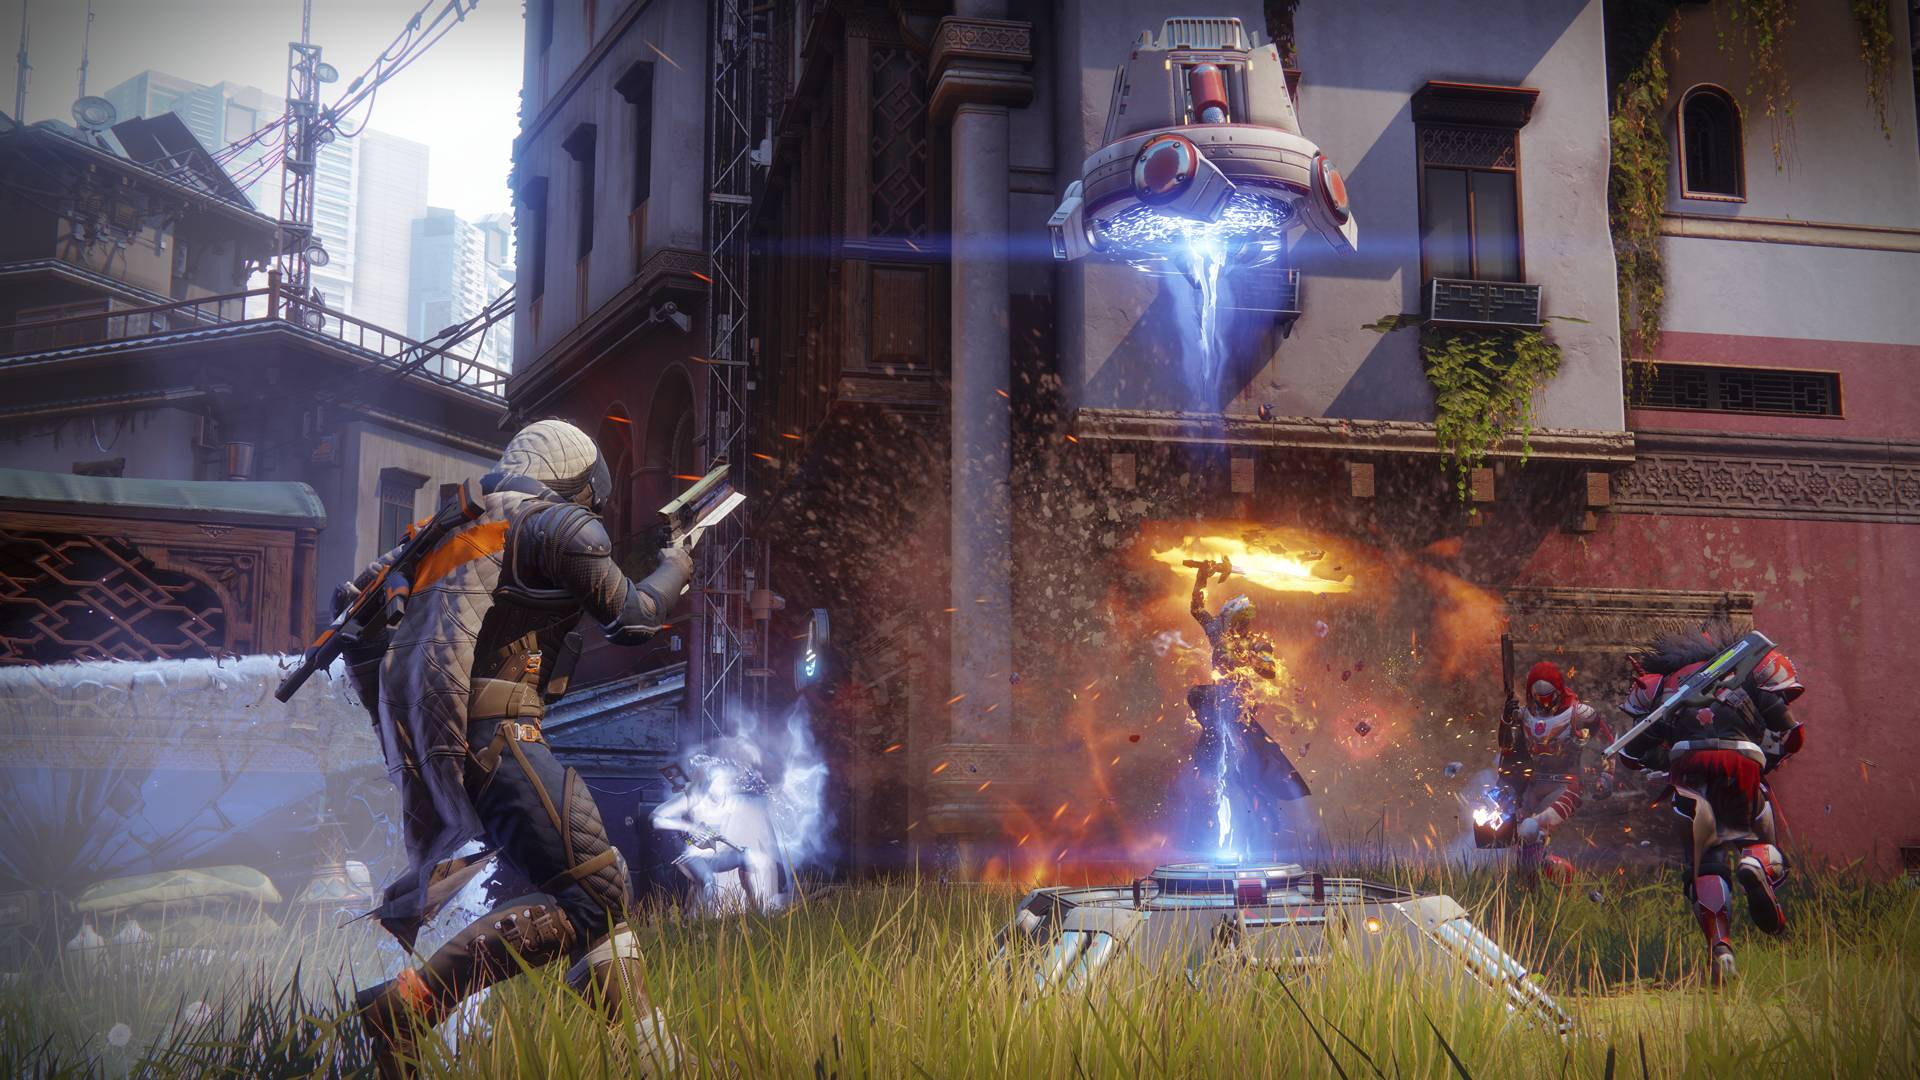 Destiny-2-Major-changes-are-coming-to-the-Trials-PVP-mode